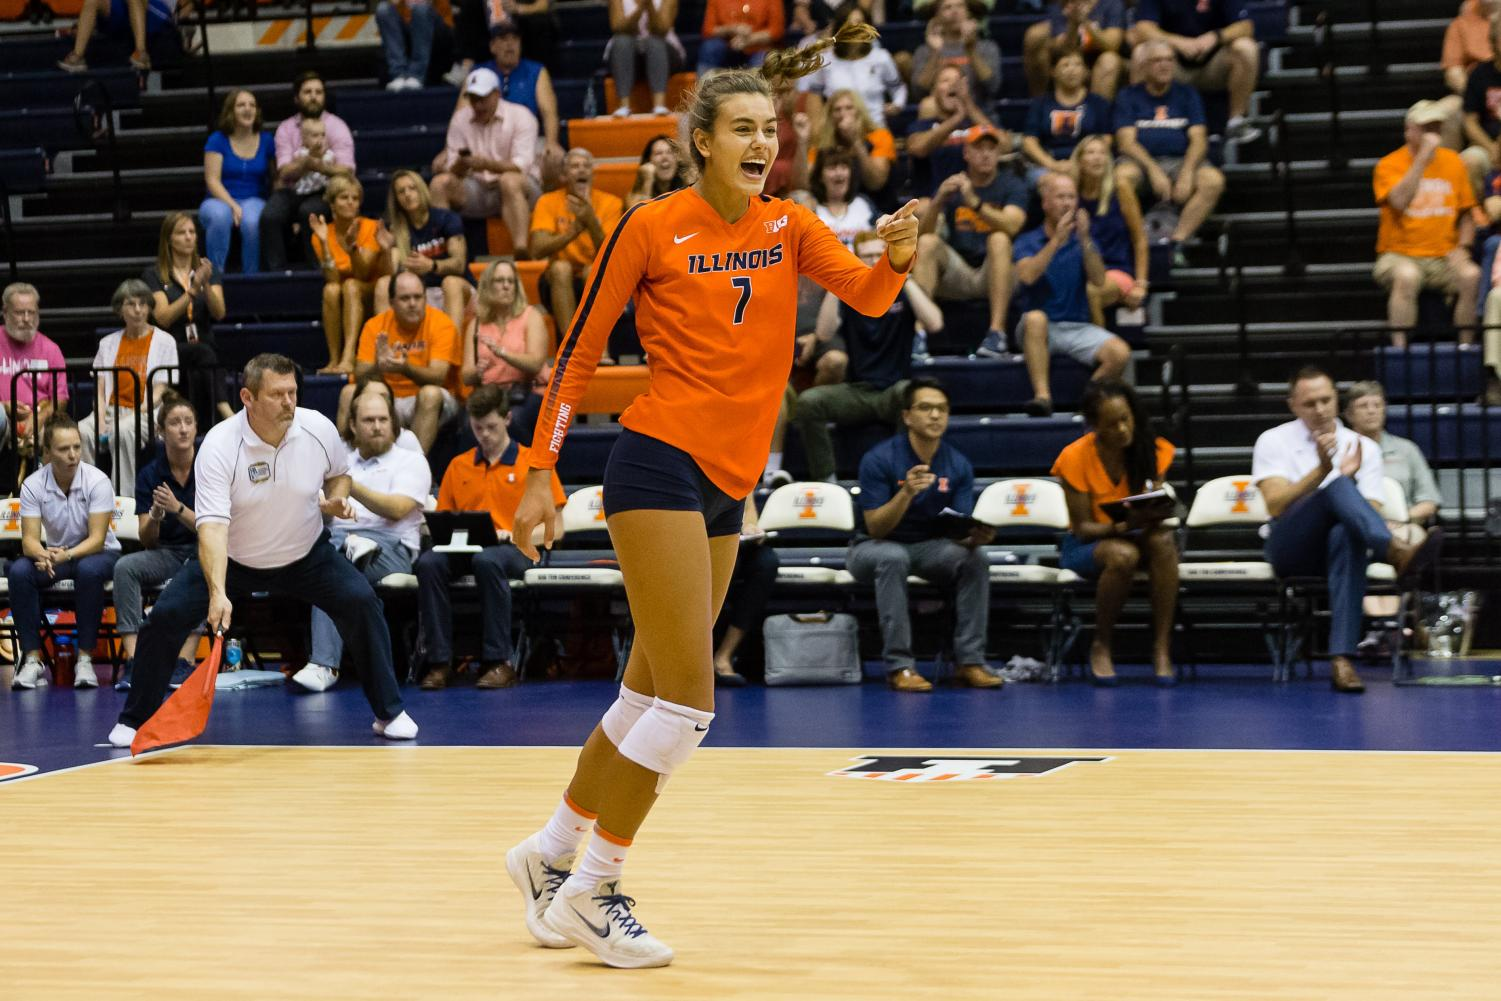 Illinois outside hitter Jacqueline Quade (7) celebrates during the match against Northern Iowa at Huff Hall on Sept. 14, 2018. The Illini won 3-0.